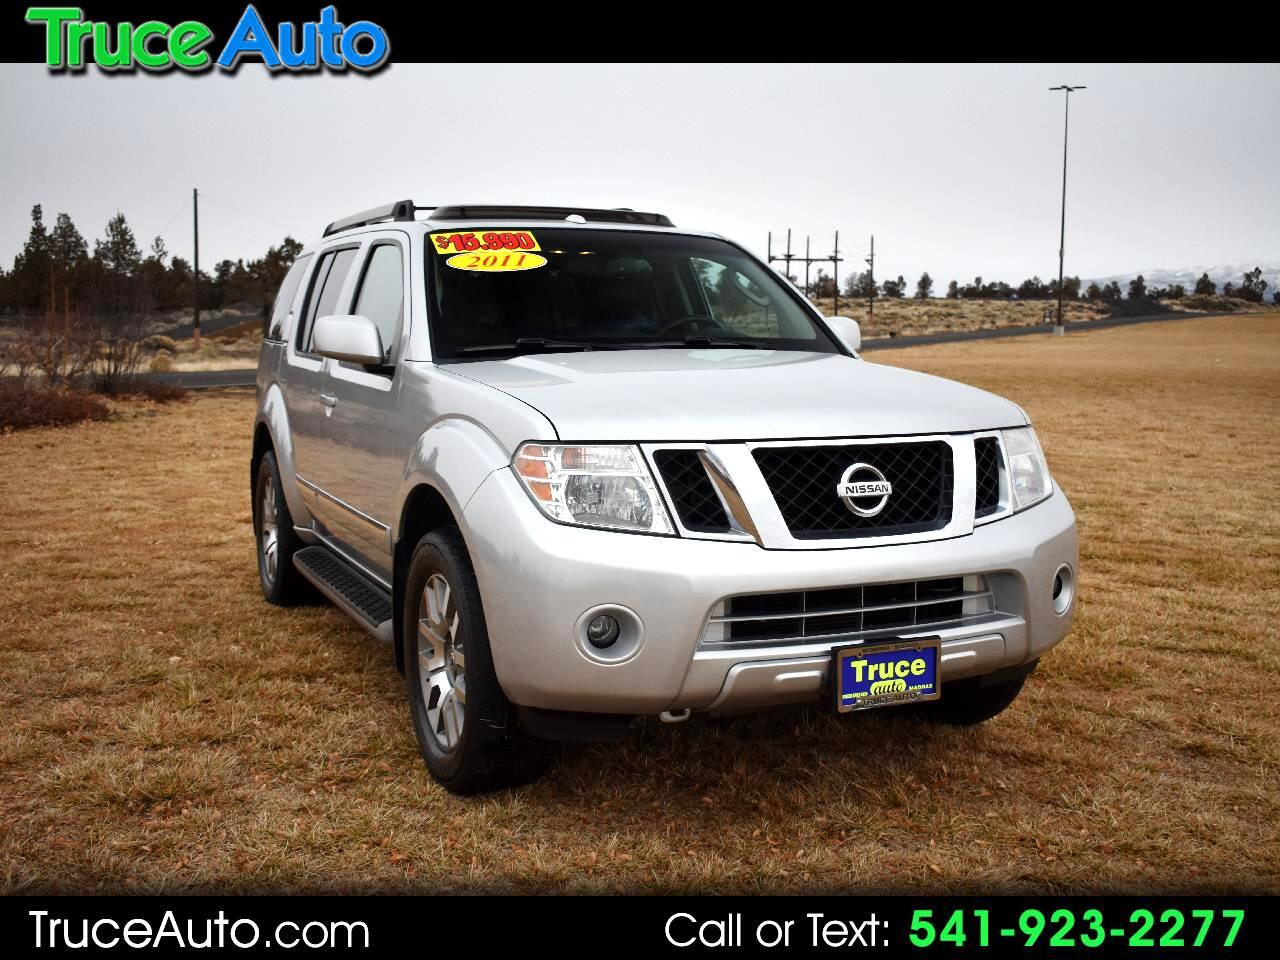 2011 Nissan Pathfinder LE 4WD ***LOW MILE***